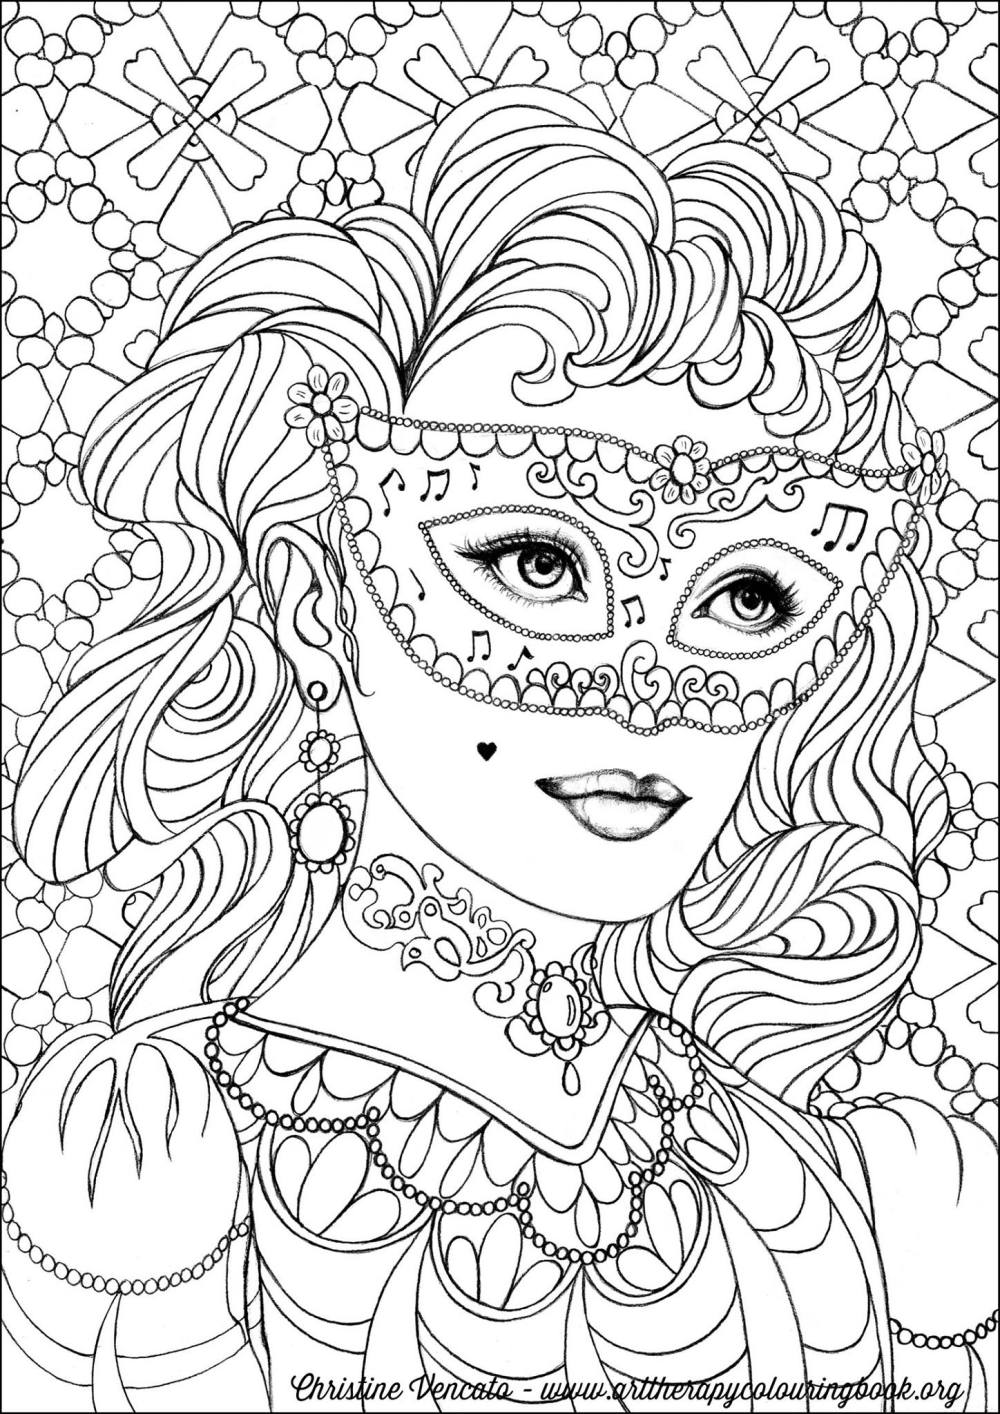 Colouring in for adults why - Free Coloring Page From Adult Coloring Worldwide Art By Christine Vencato